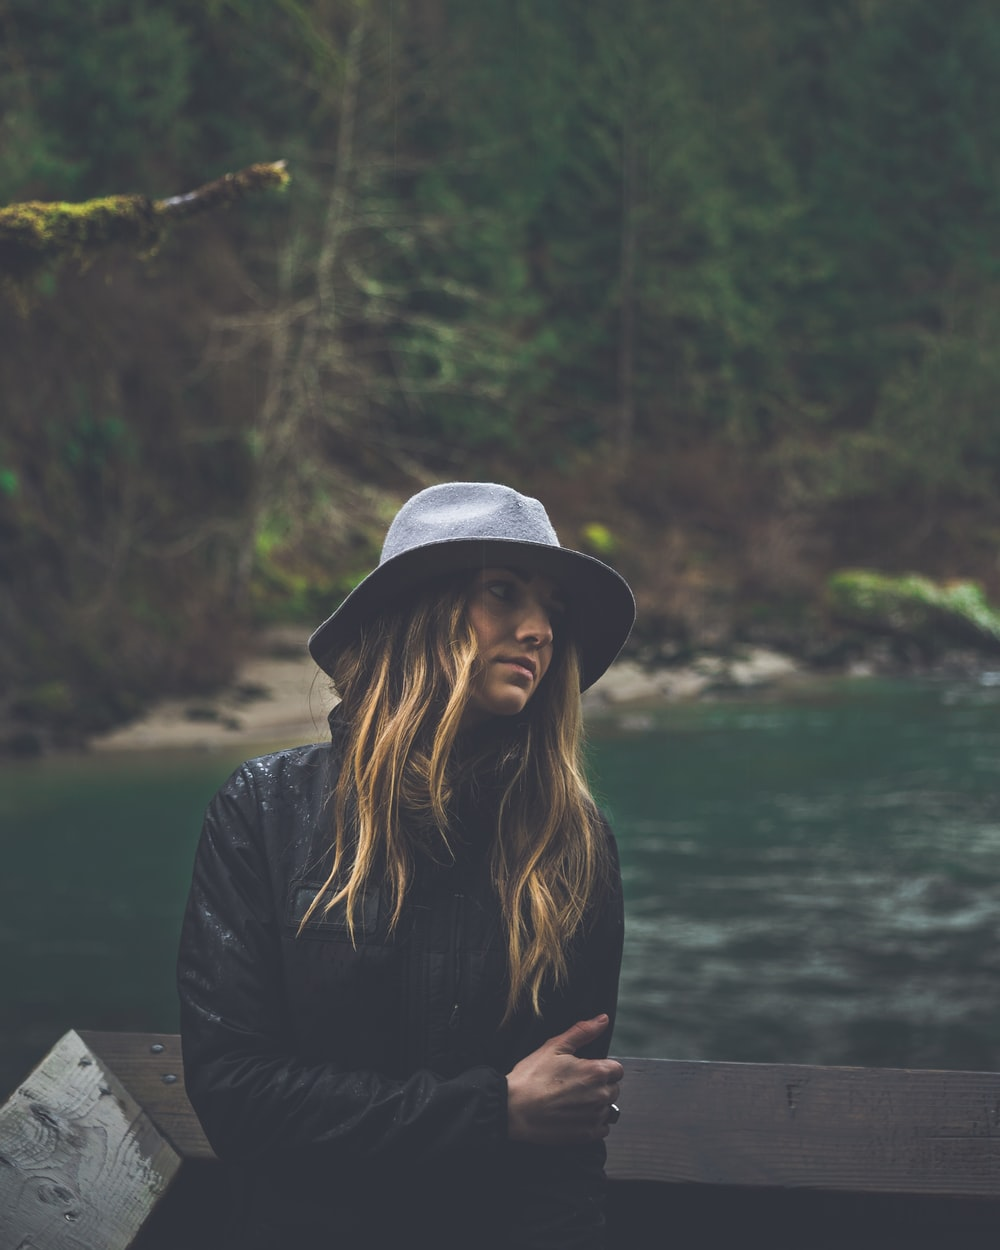 woman in black jacket and white hat sitting on wooden dock during daytime